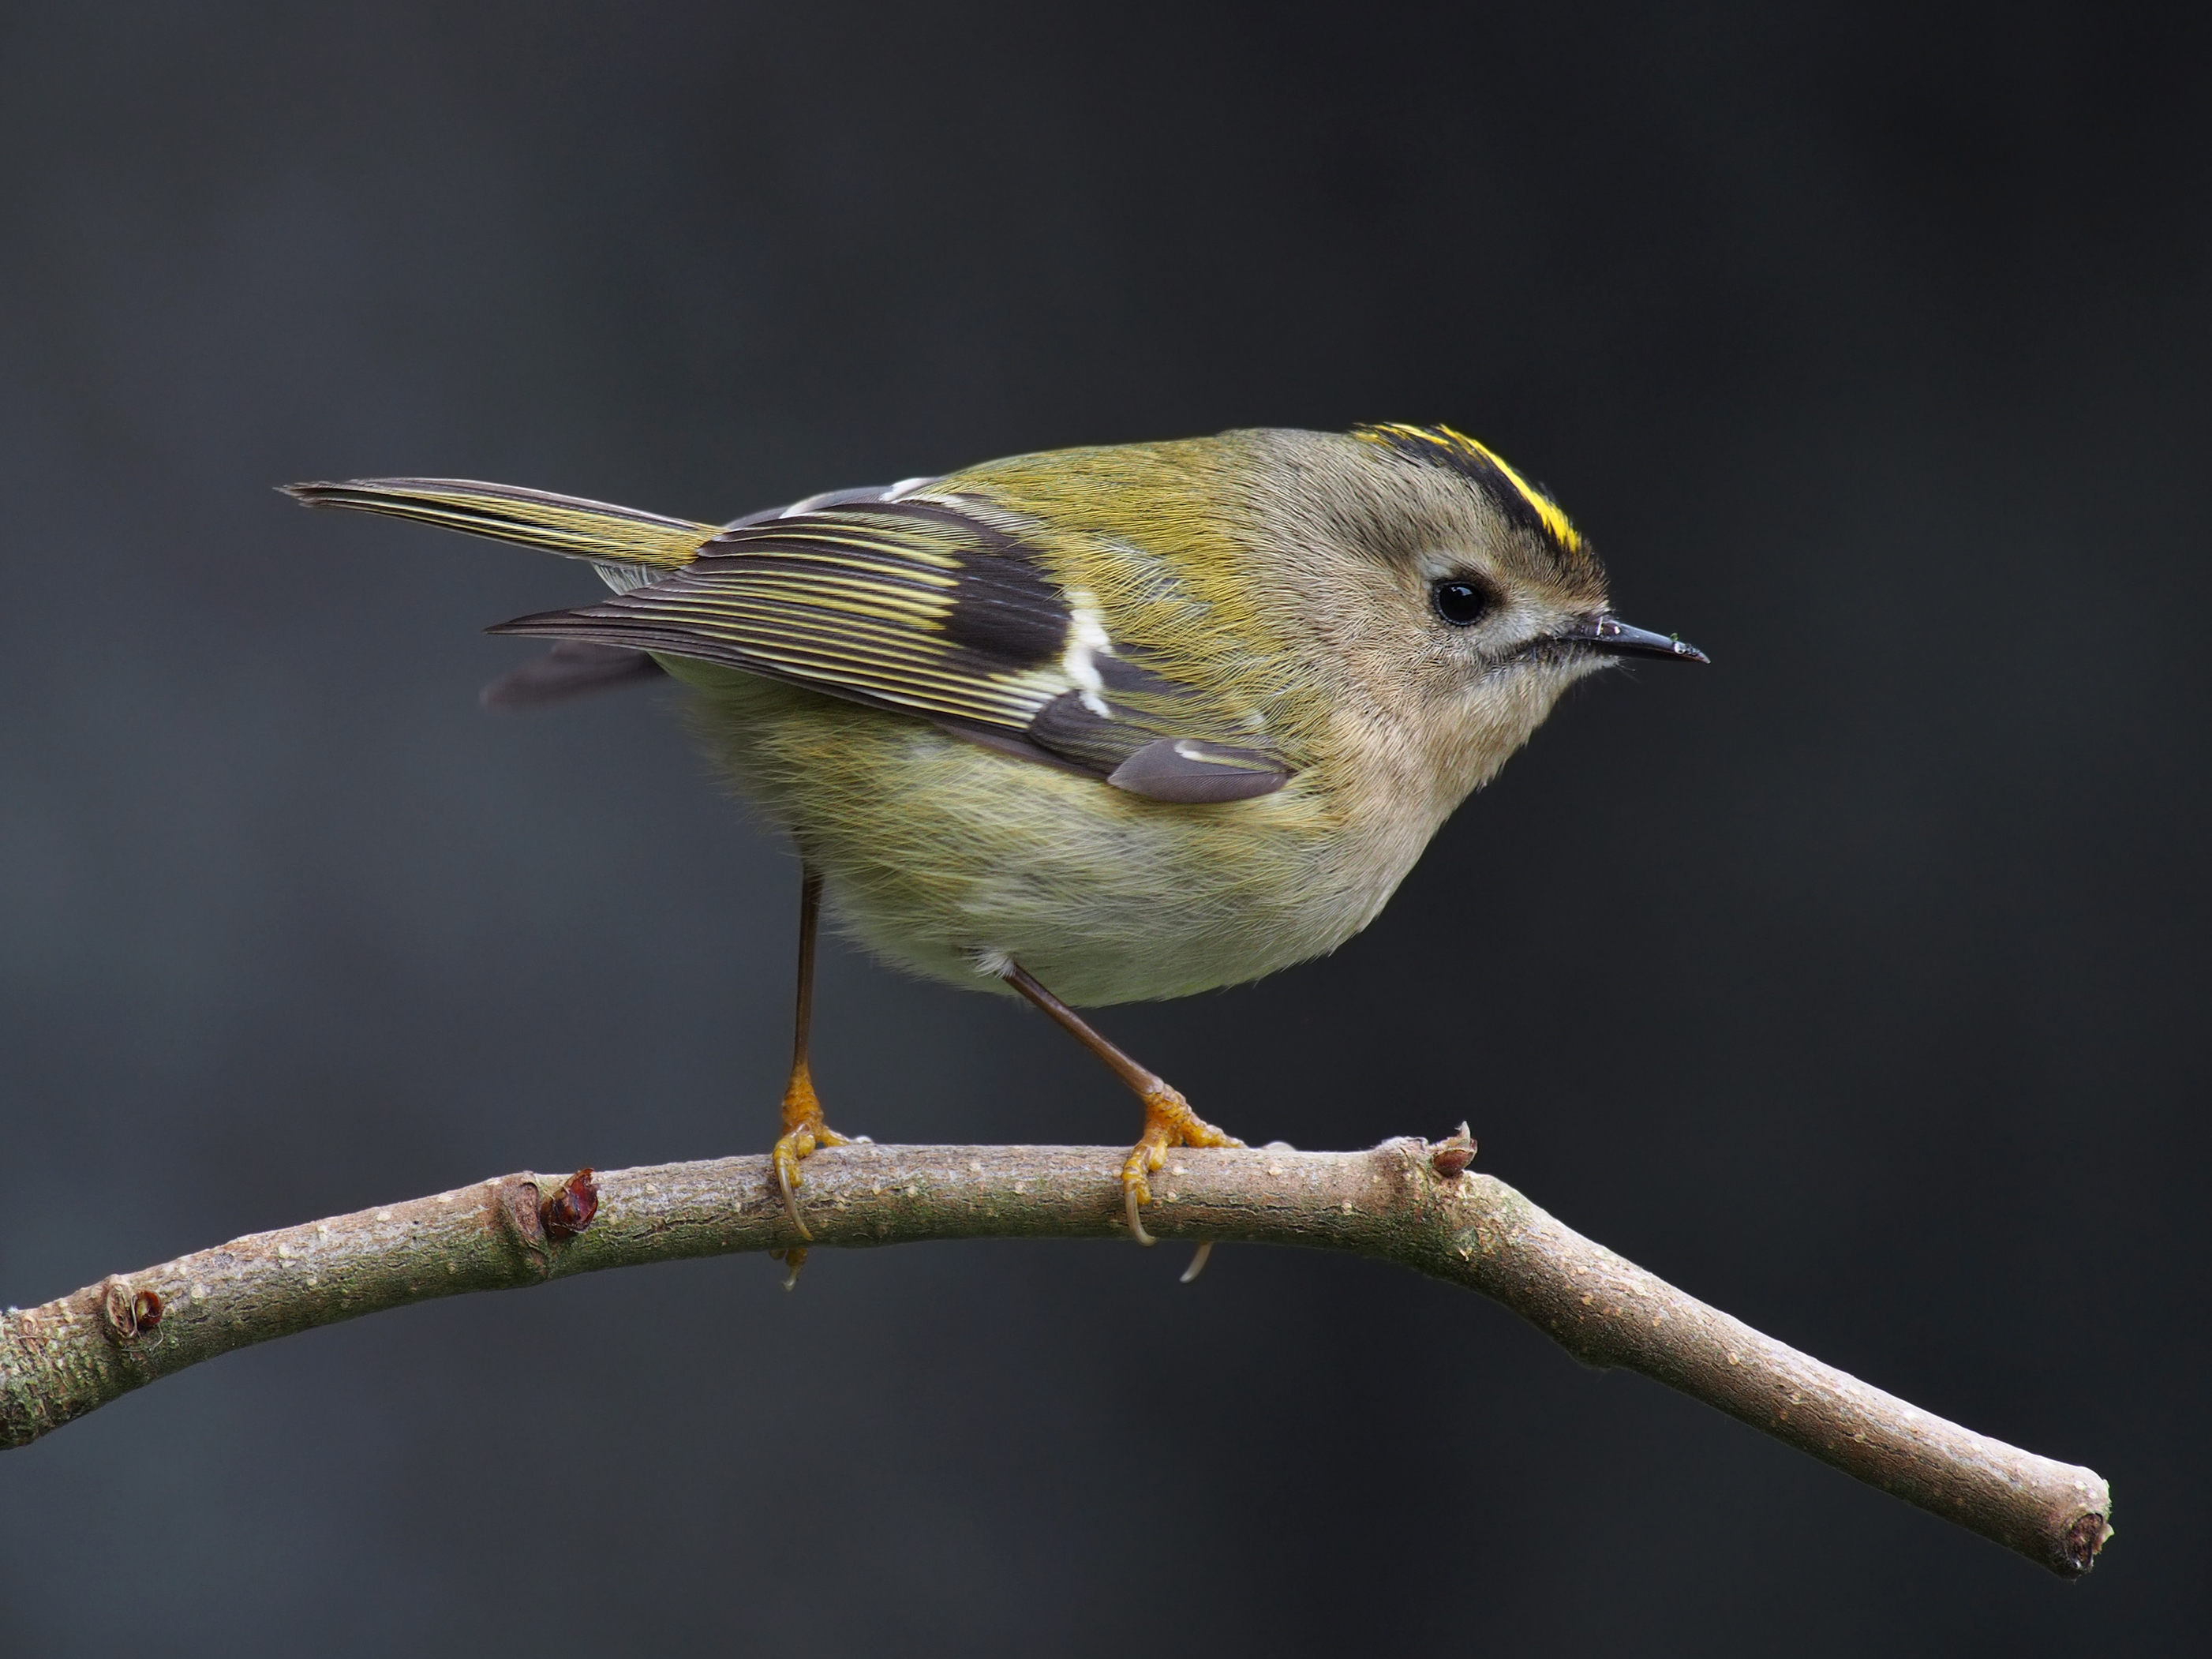 Which bird displays the chicks in winter